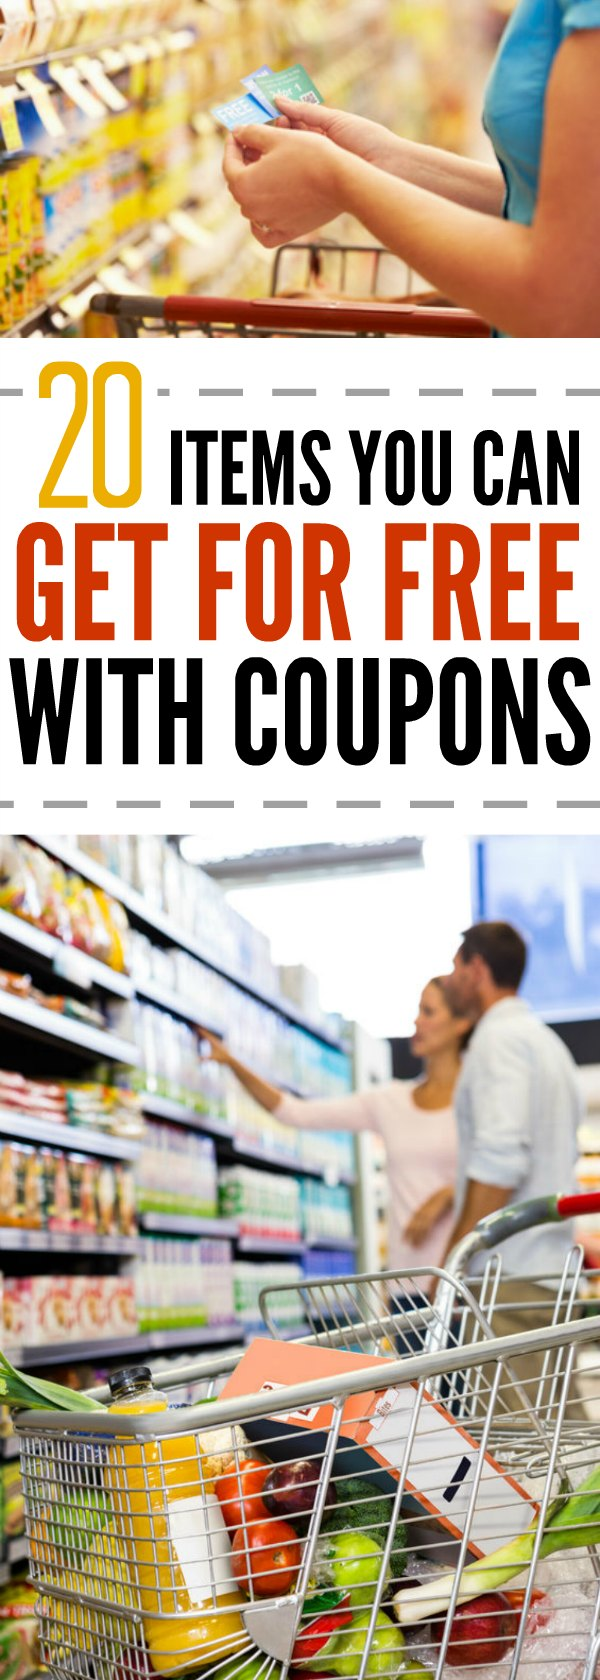 20 Items you can get for FREE with Coupons #couponing